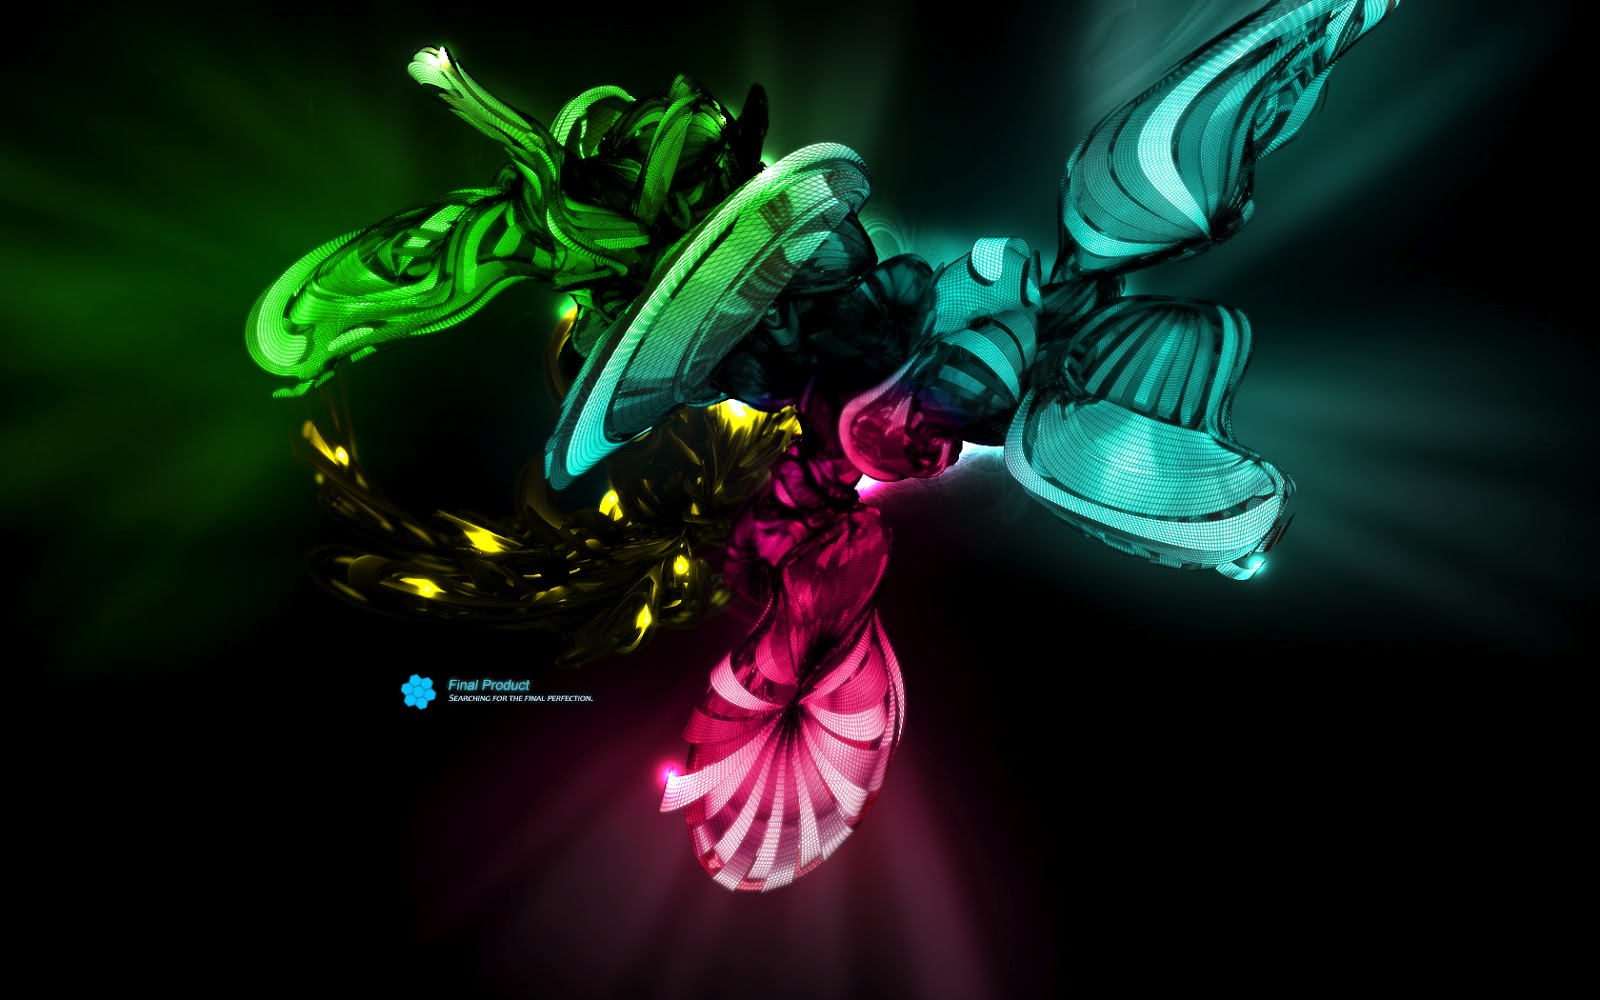 Wallpapers Hd 3d Music: Image Gallary 3: Beautiful Cool Abstract Wallpaper Designs